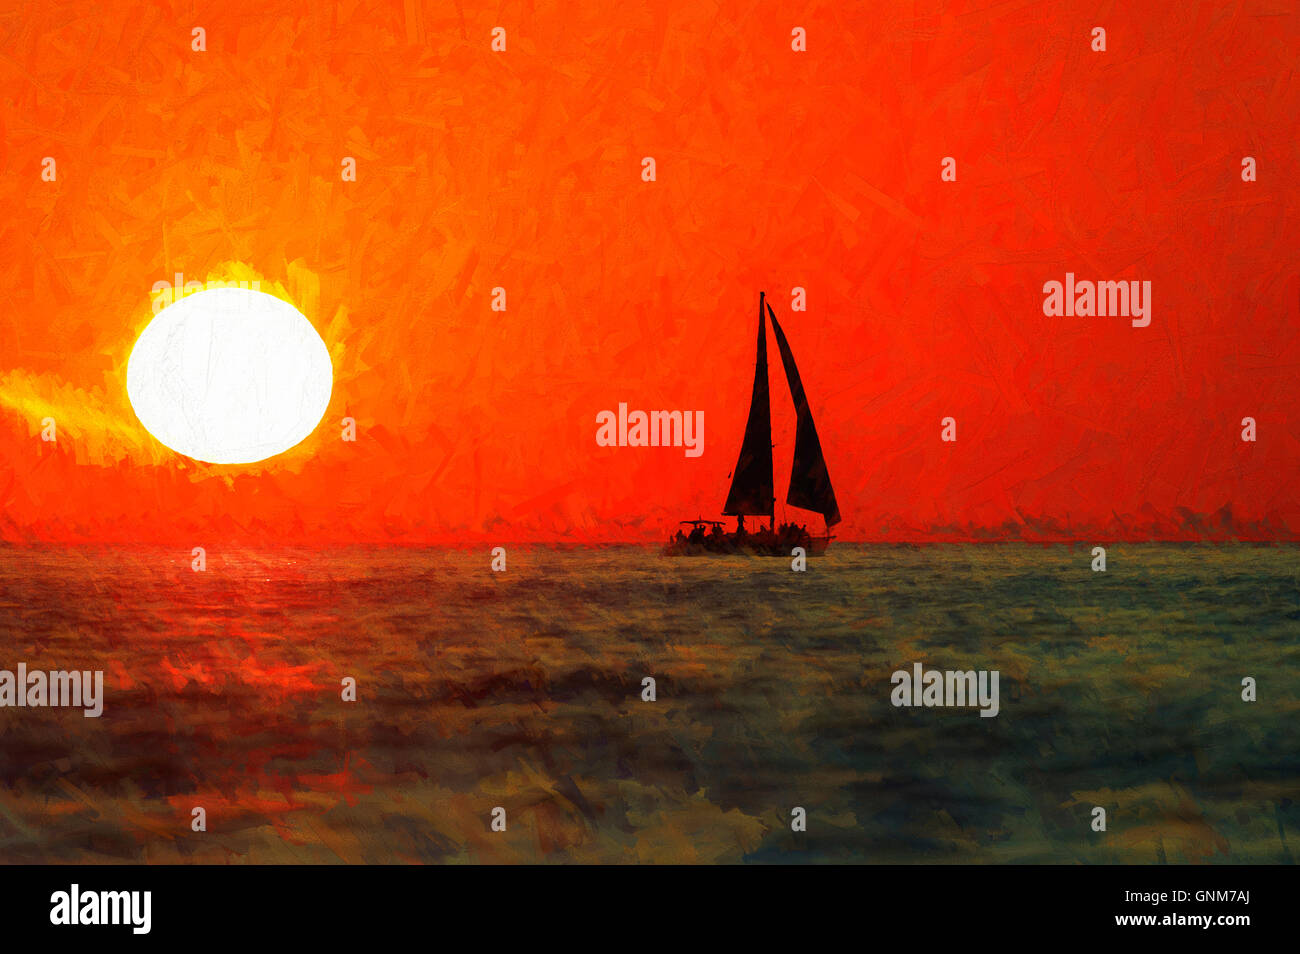 sailboat silhouette sunset is a boat sailing with full sail set